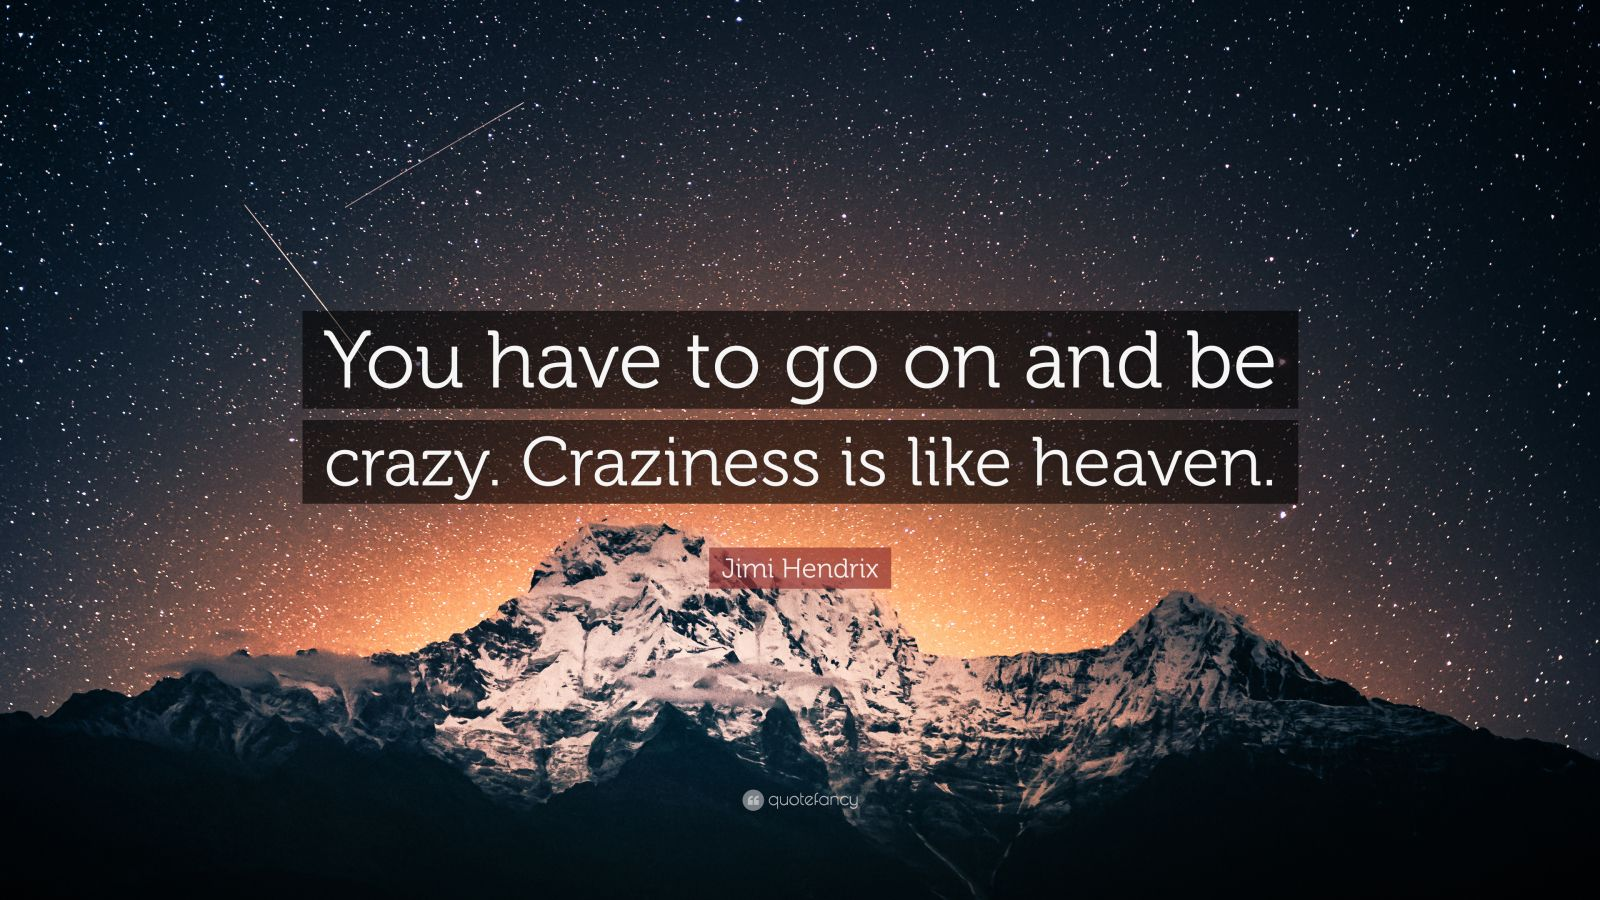 """Jimi Hendrix Quote: """"You have to go on and be crazy. Craziness is like heaven."""""""